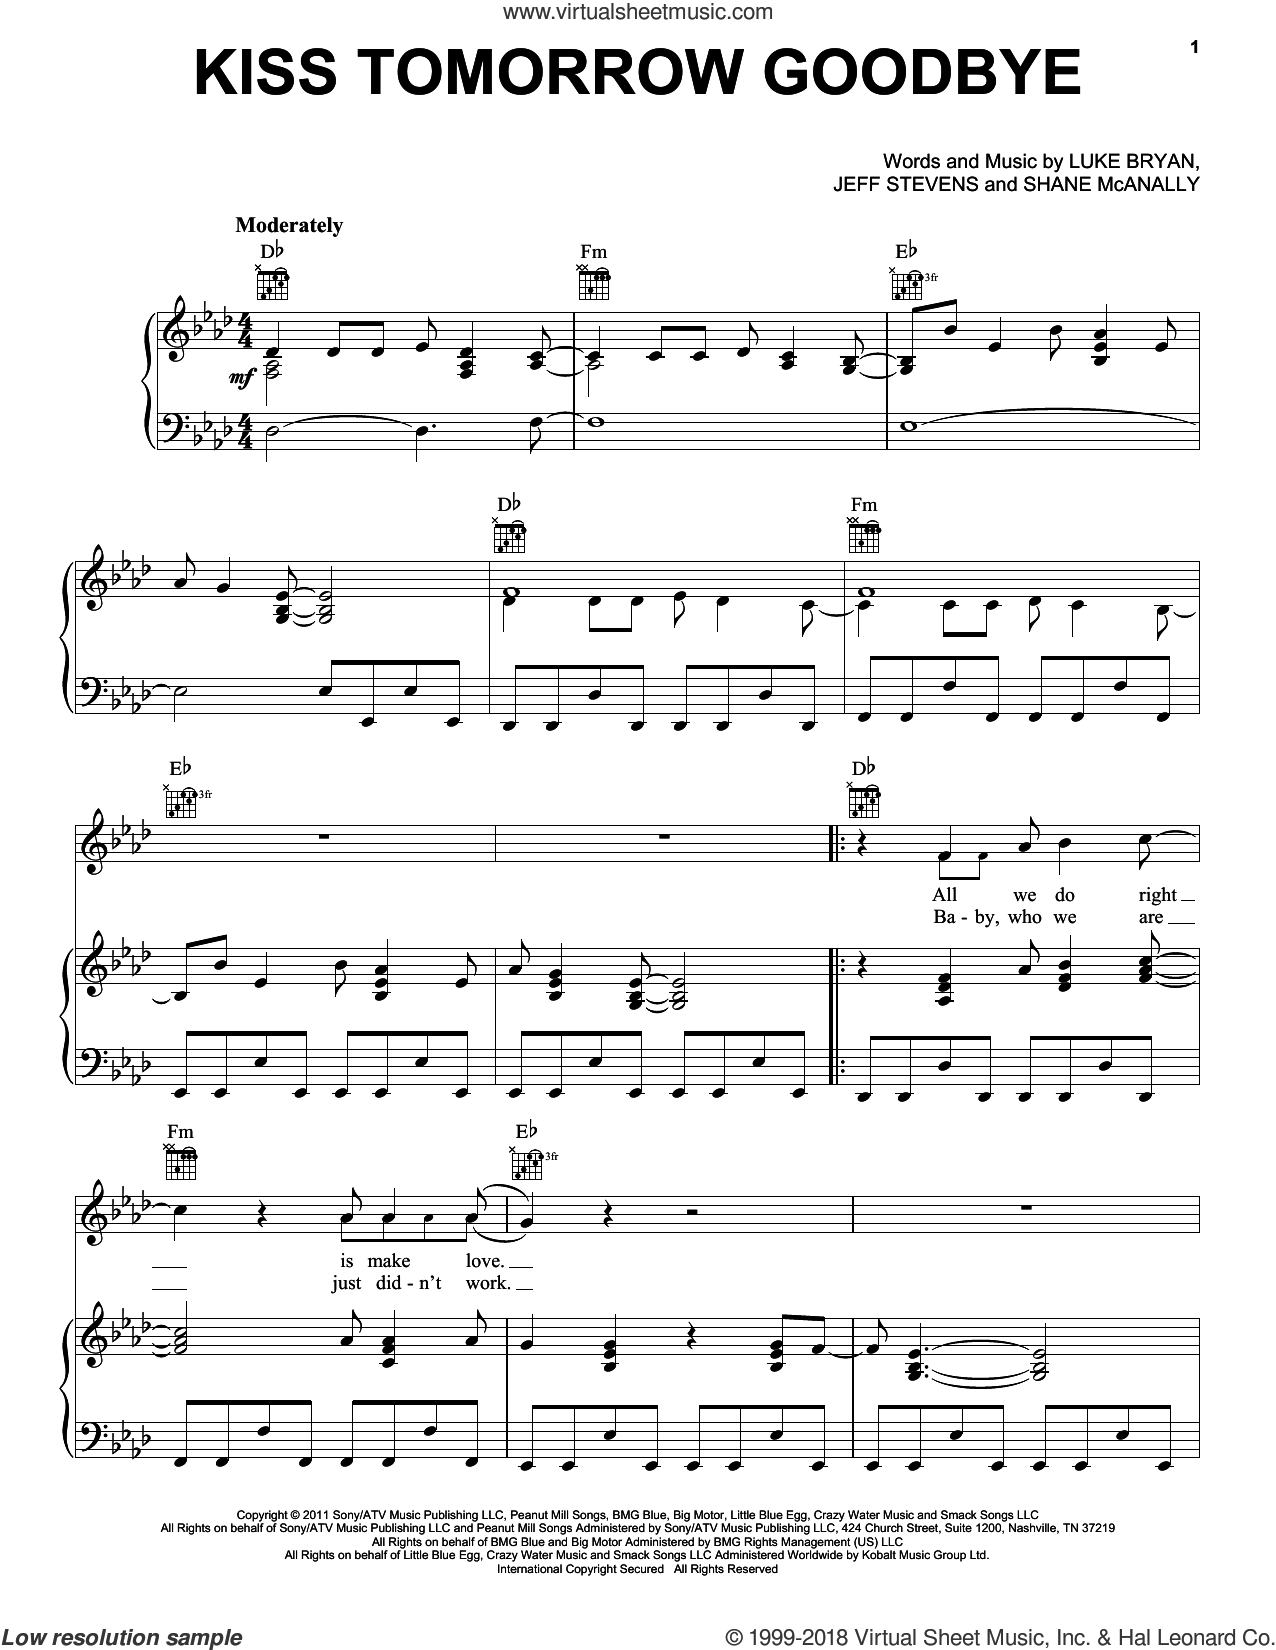 Kiss Tomorrow Goodbye sheet music for voice, piano or guitar by Luke Bryan and Jeff Stevens. Score Image Preview.